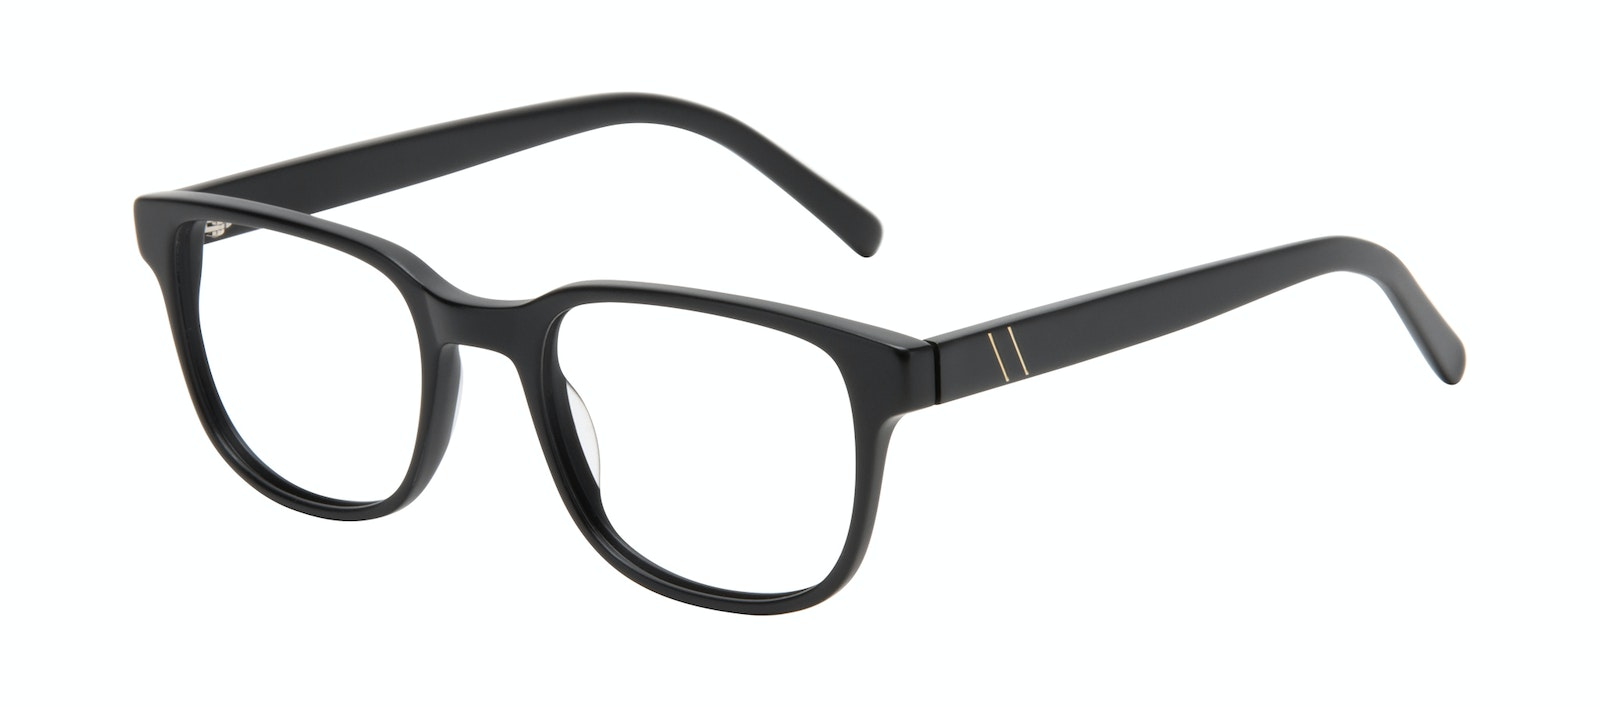 Affordable Fashion Glasses Square Eyeglasses Men Role Black Matte Tilt